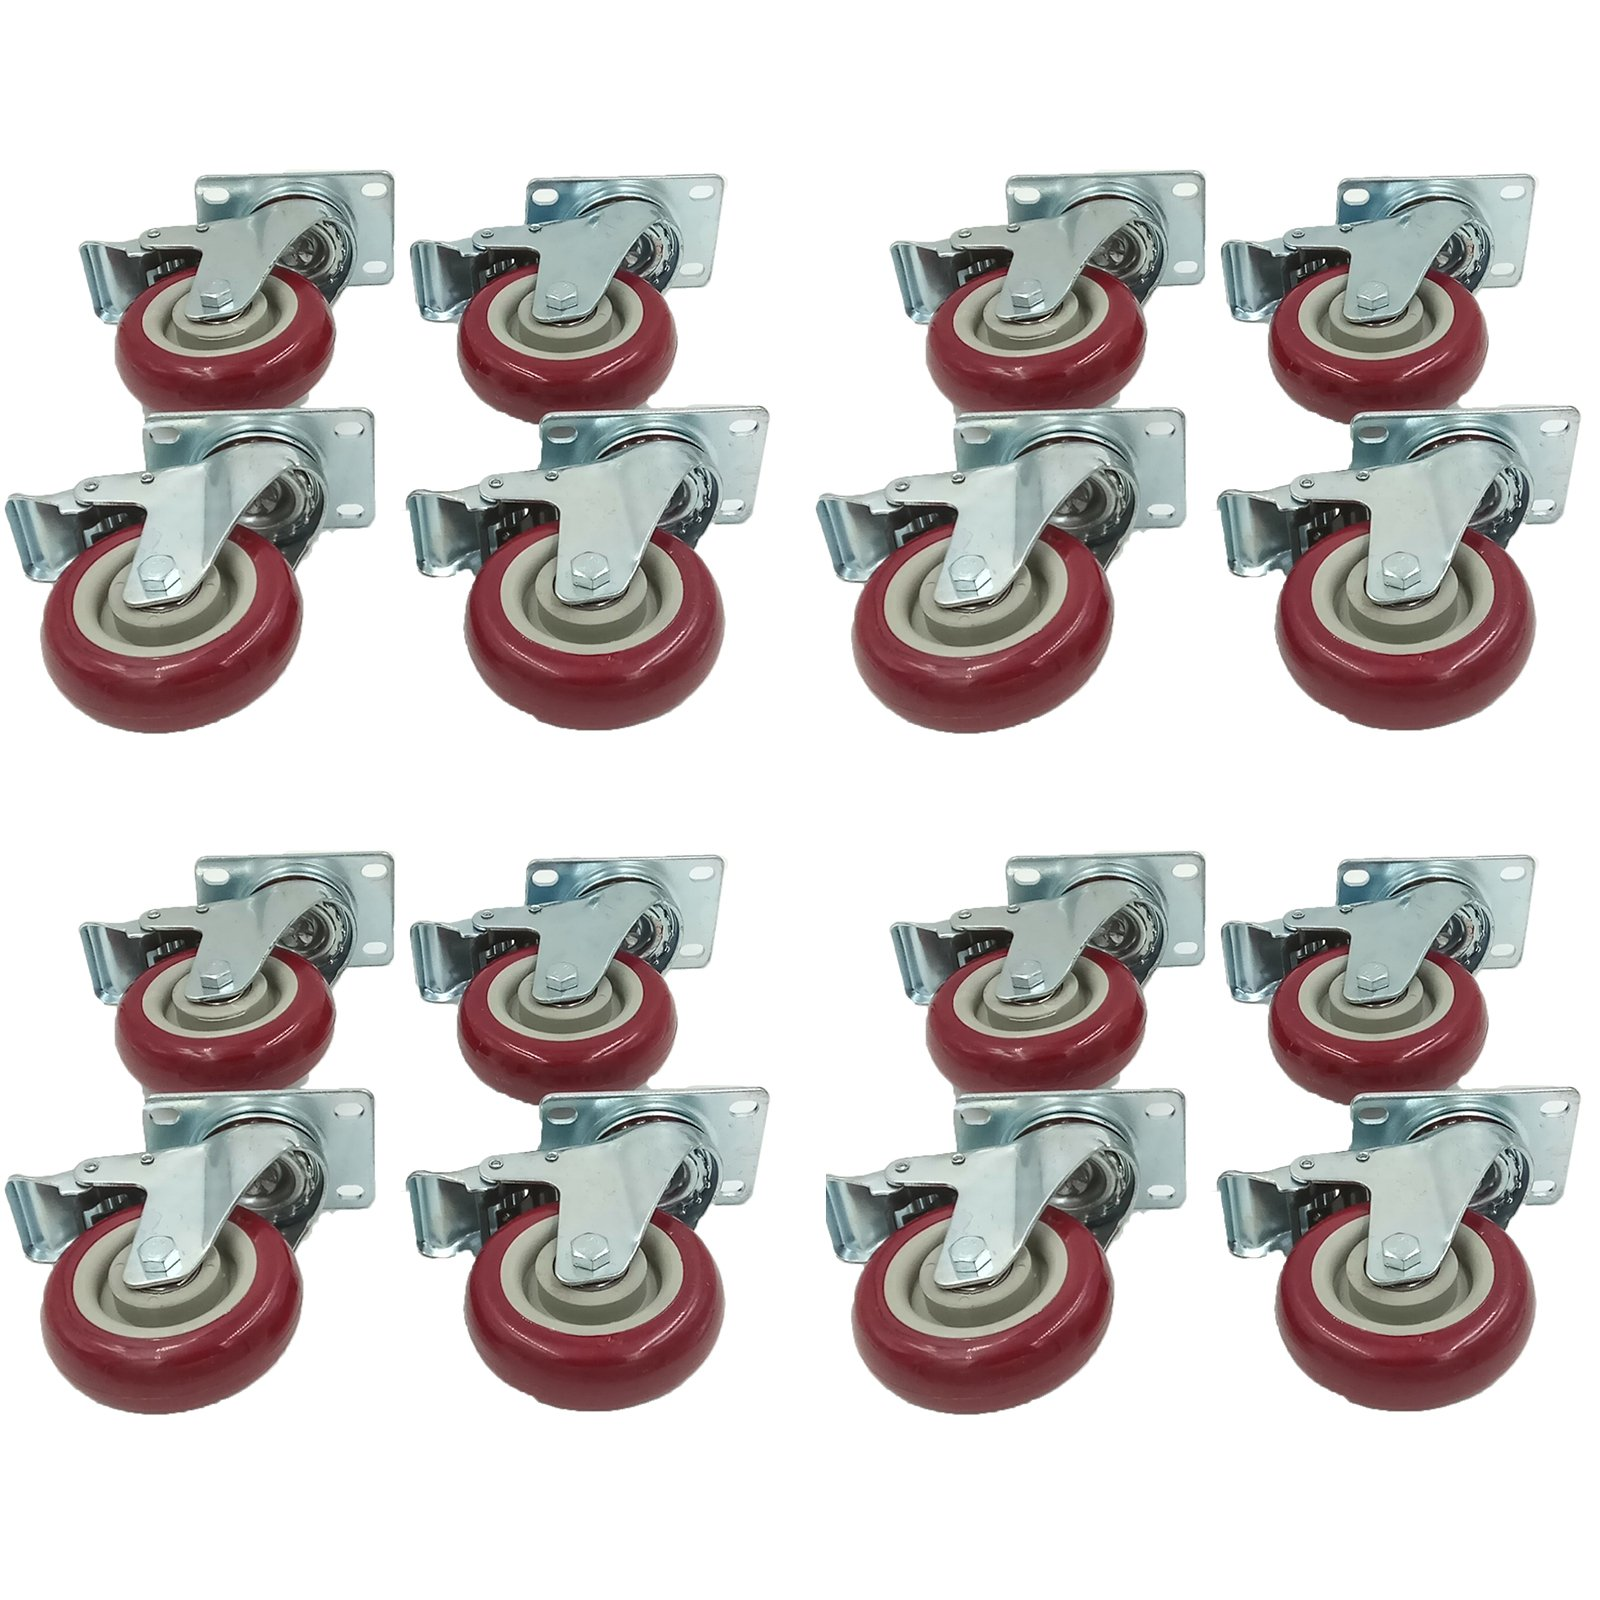 4″ PVC Heavy Duty Swivel Caster Wheels Lockable Ball Bearing 300Lbs each (Set of 16) by MarsIndustry (Image #1)